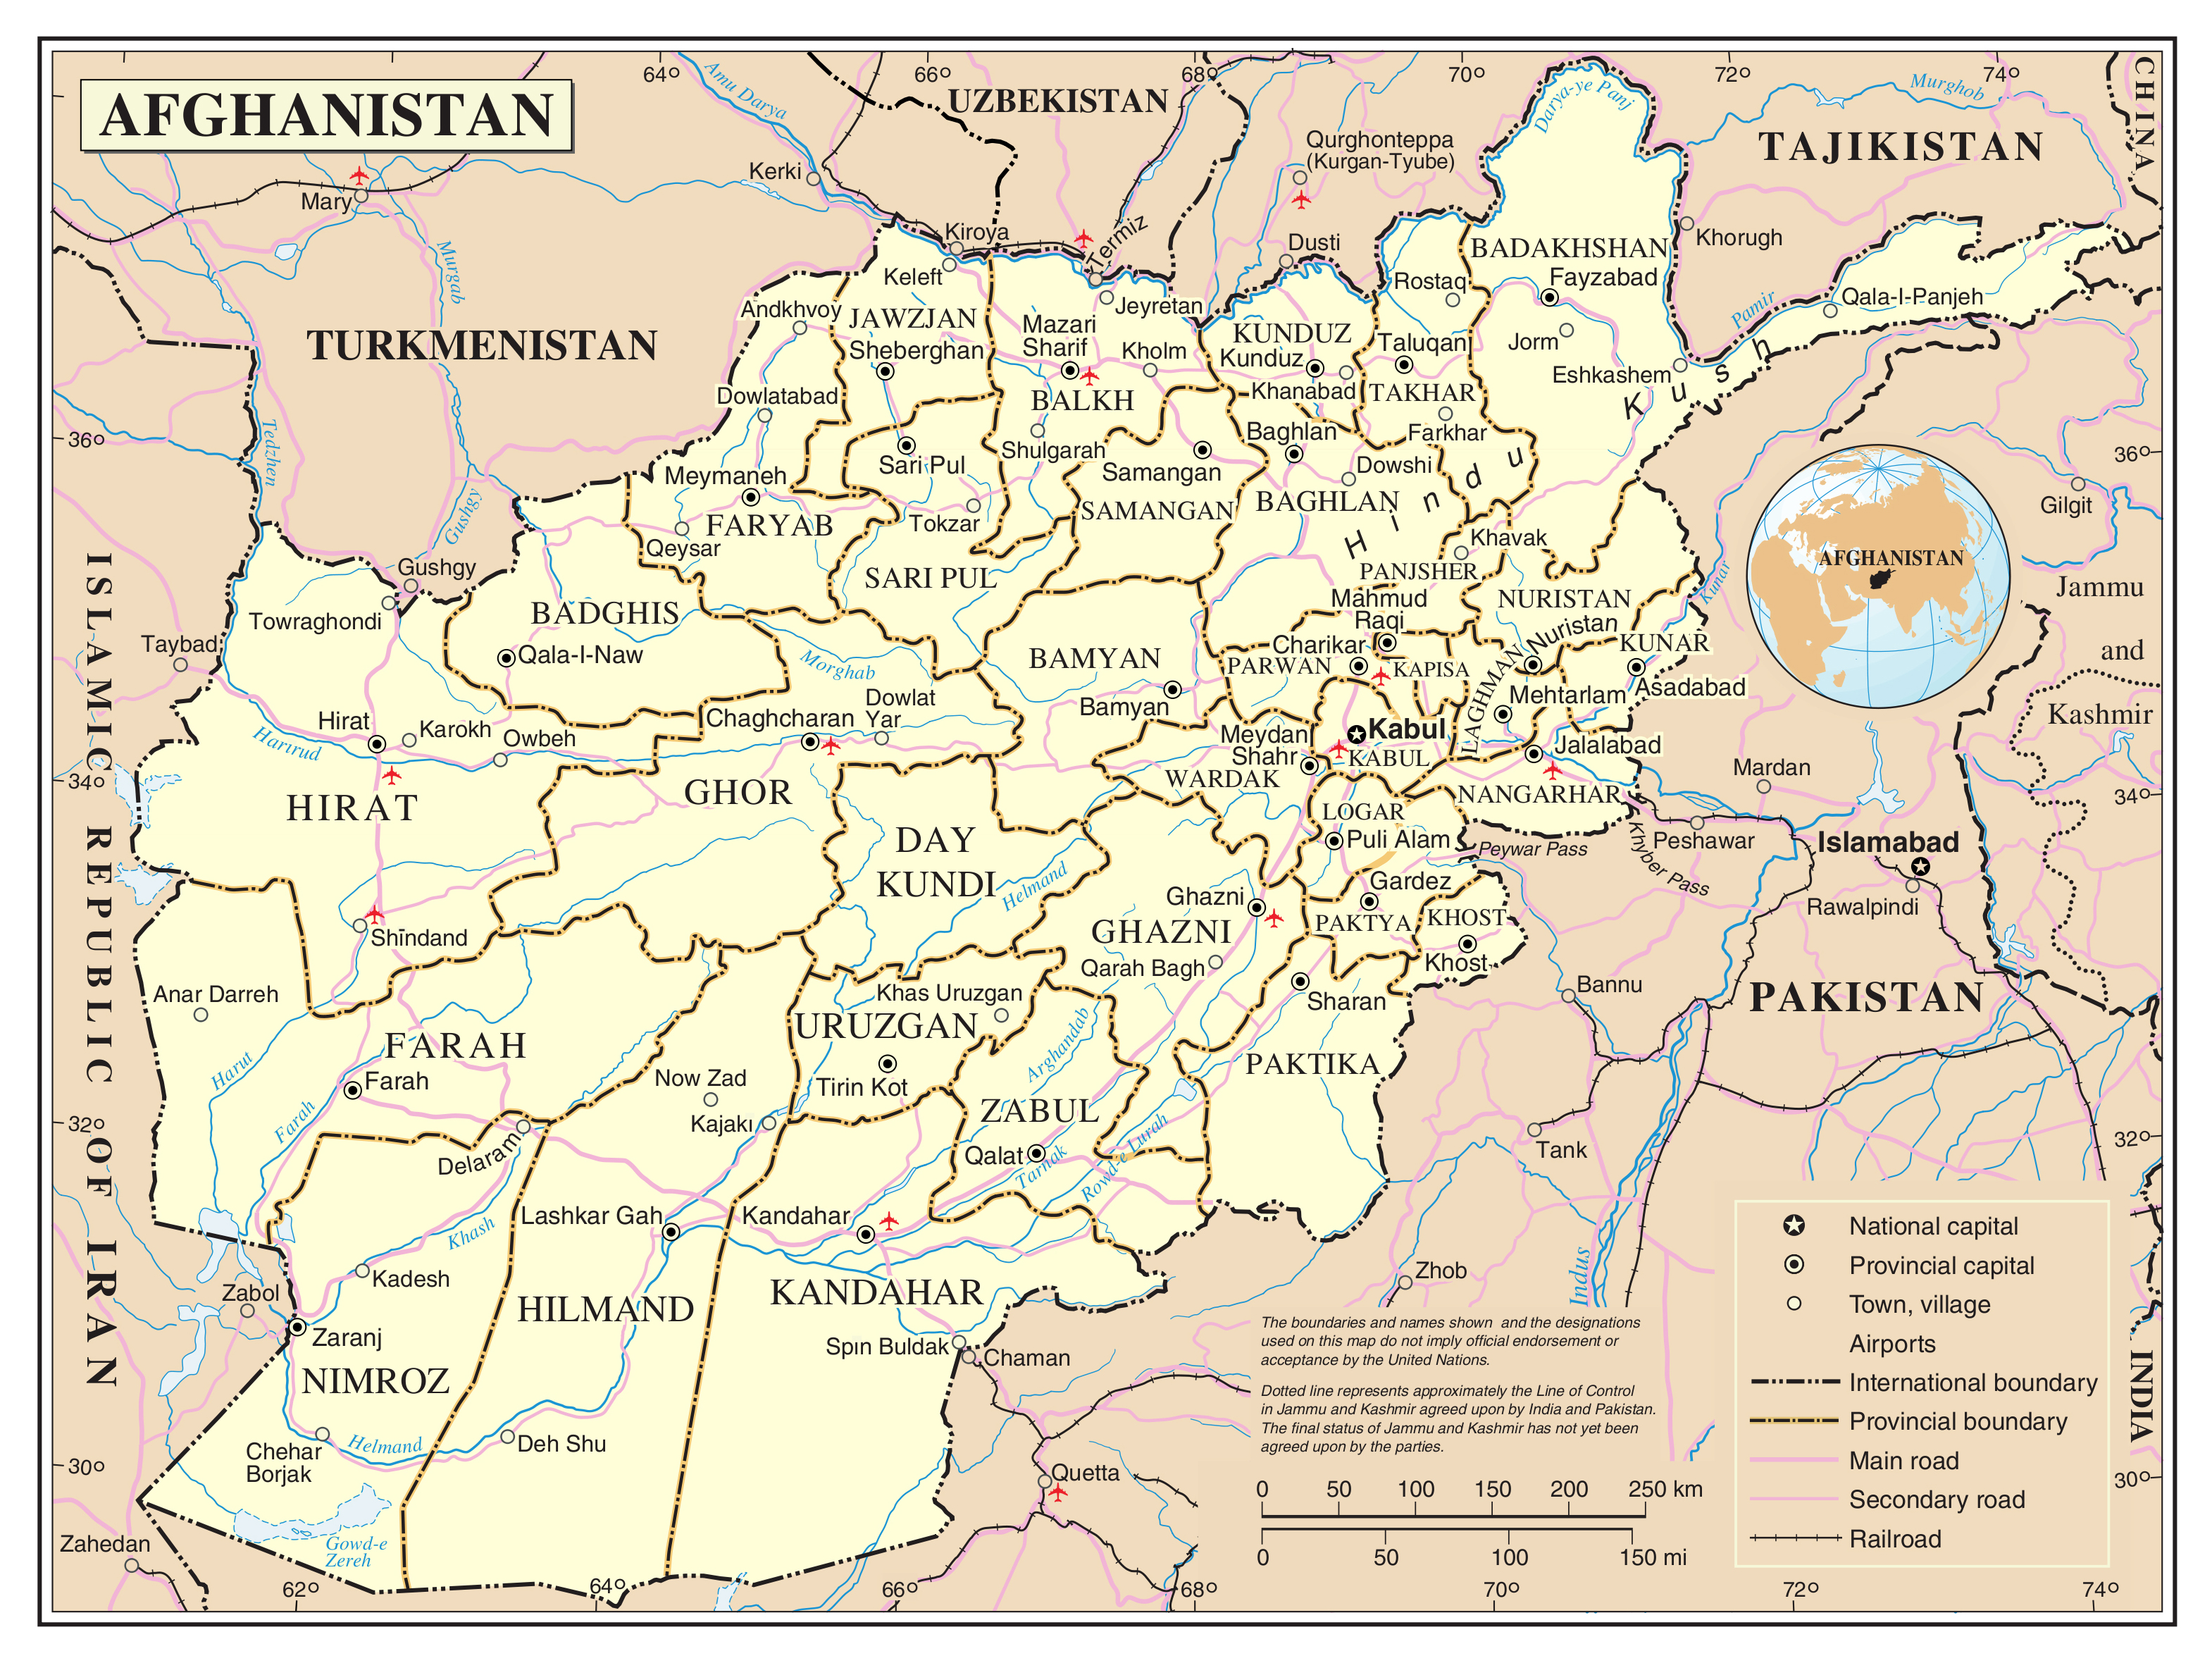 Large Detailed Political And Administrative Map Of Afghanistan - Afghanistan political map